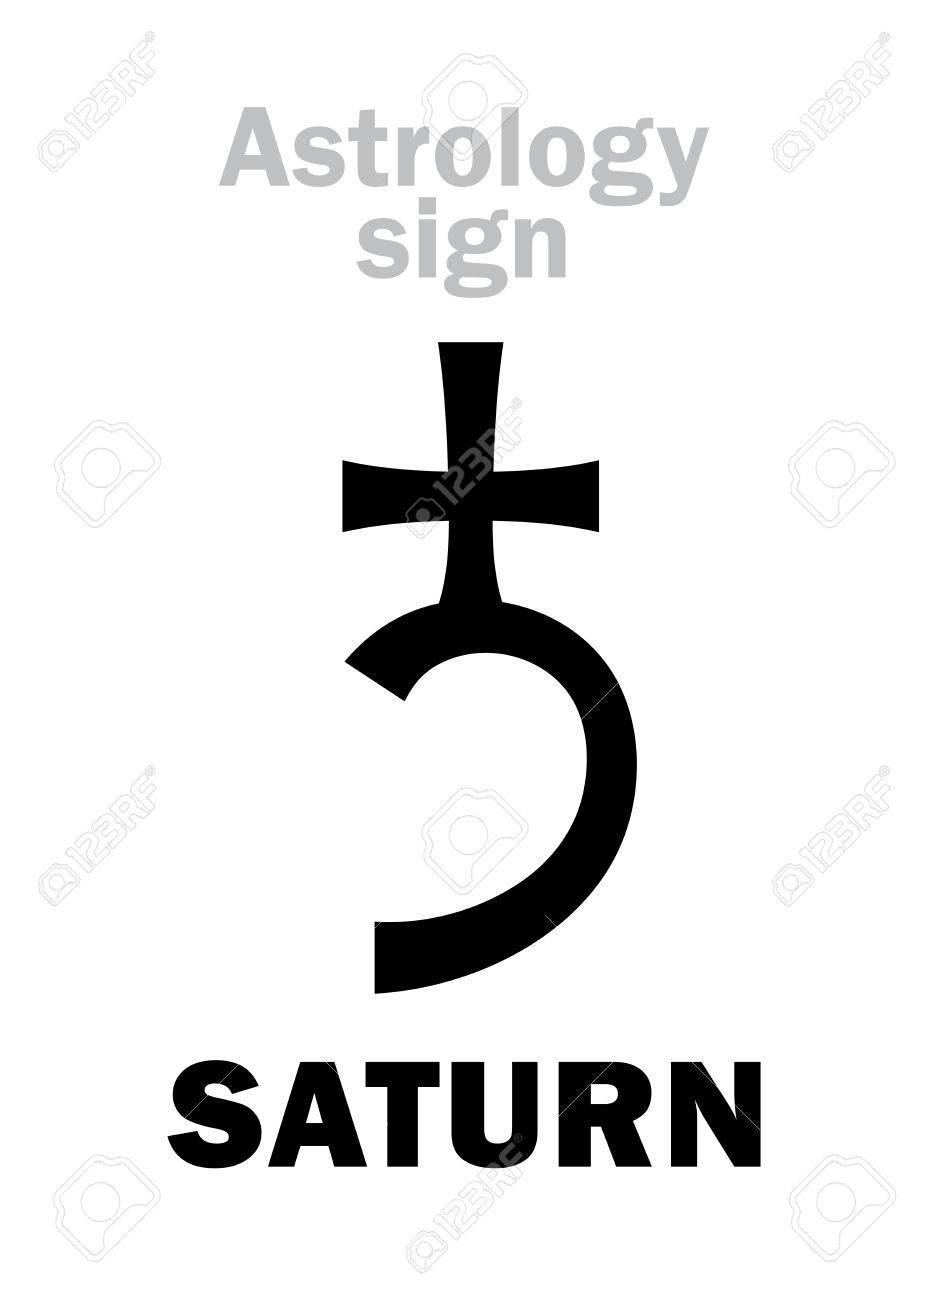 Astrology alphabet saturn classic major social planet astrology alphabet saturn classic major social planet hieroglyphics character sign single symbol buycottarizona Image collections